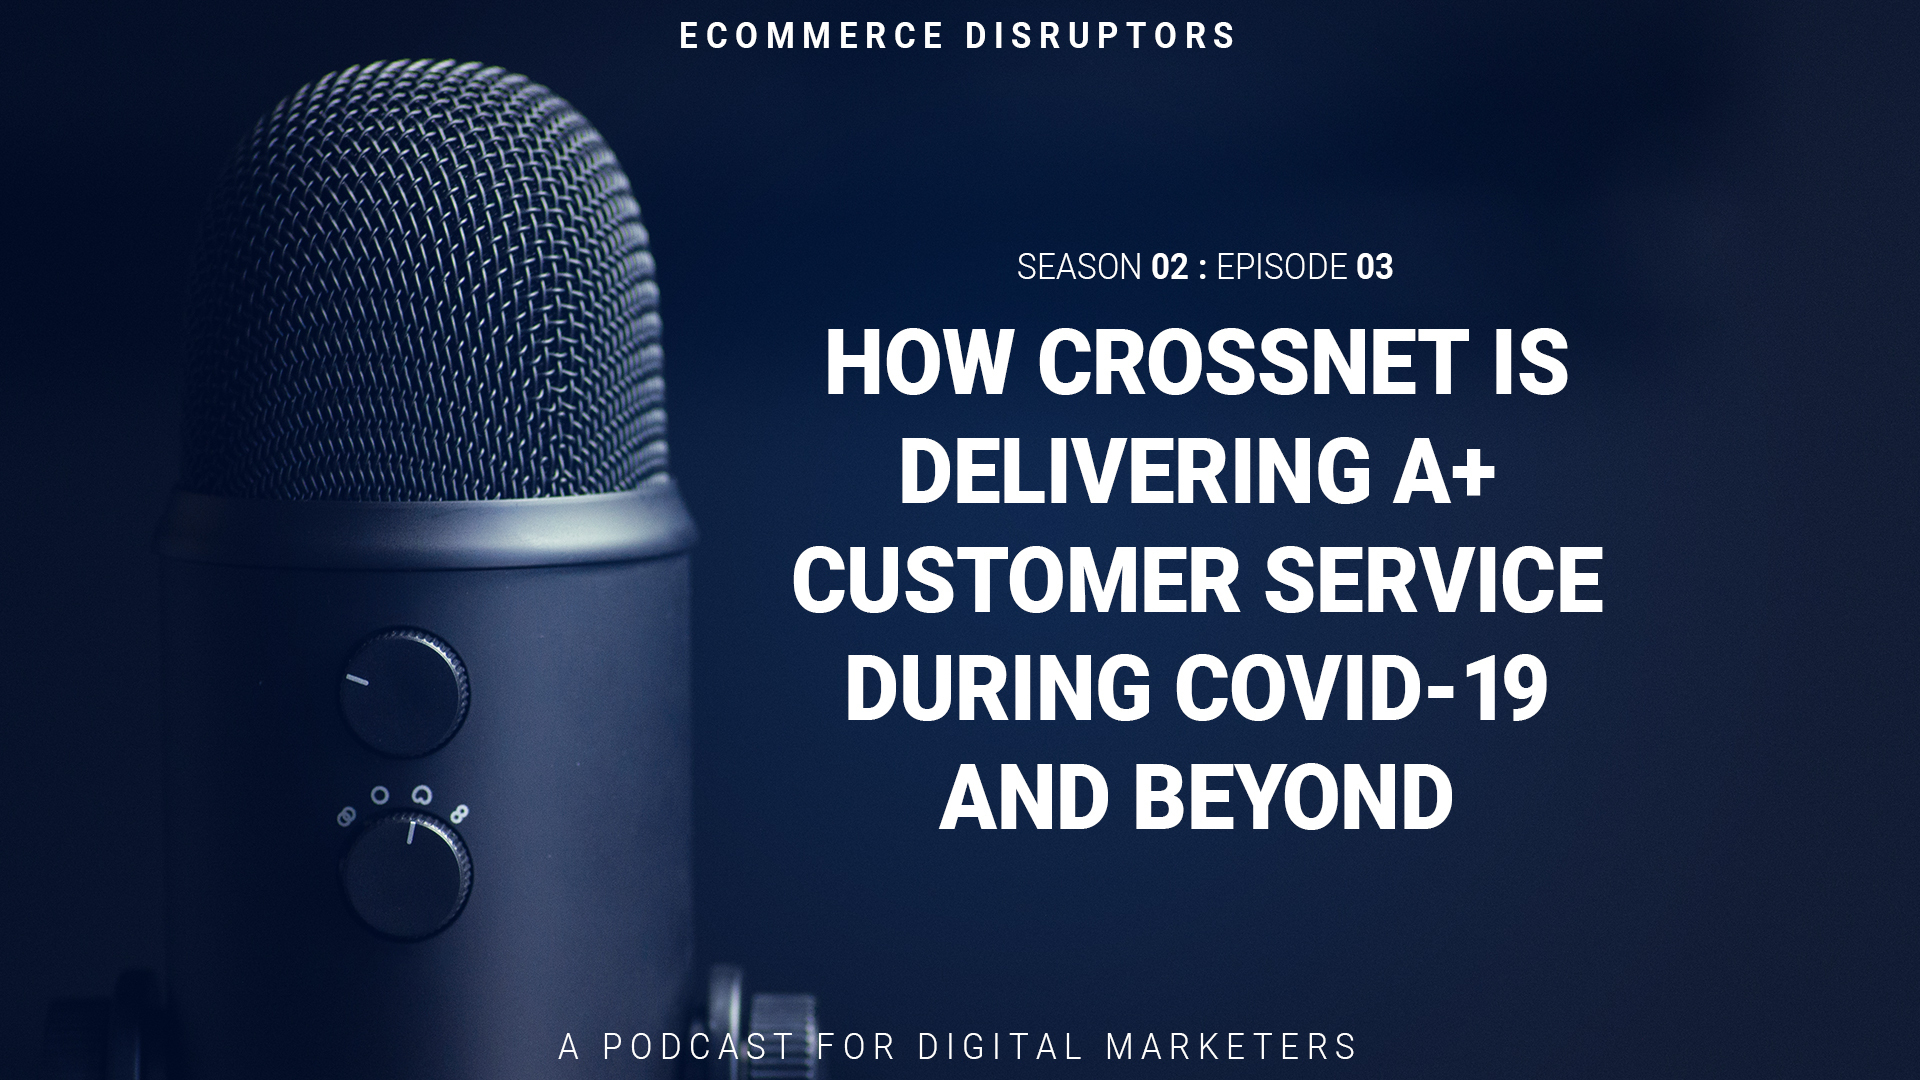 How CrossNet is Delivering A+ Customer Service During COVID-19 and Beyond